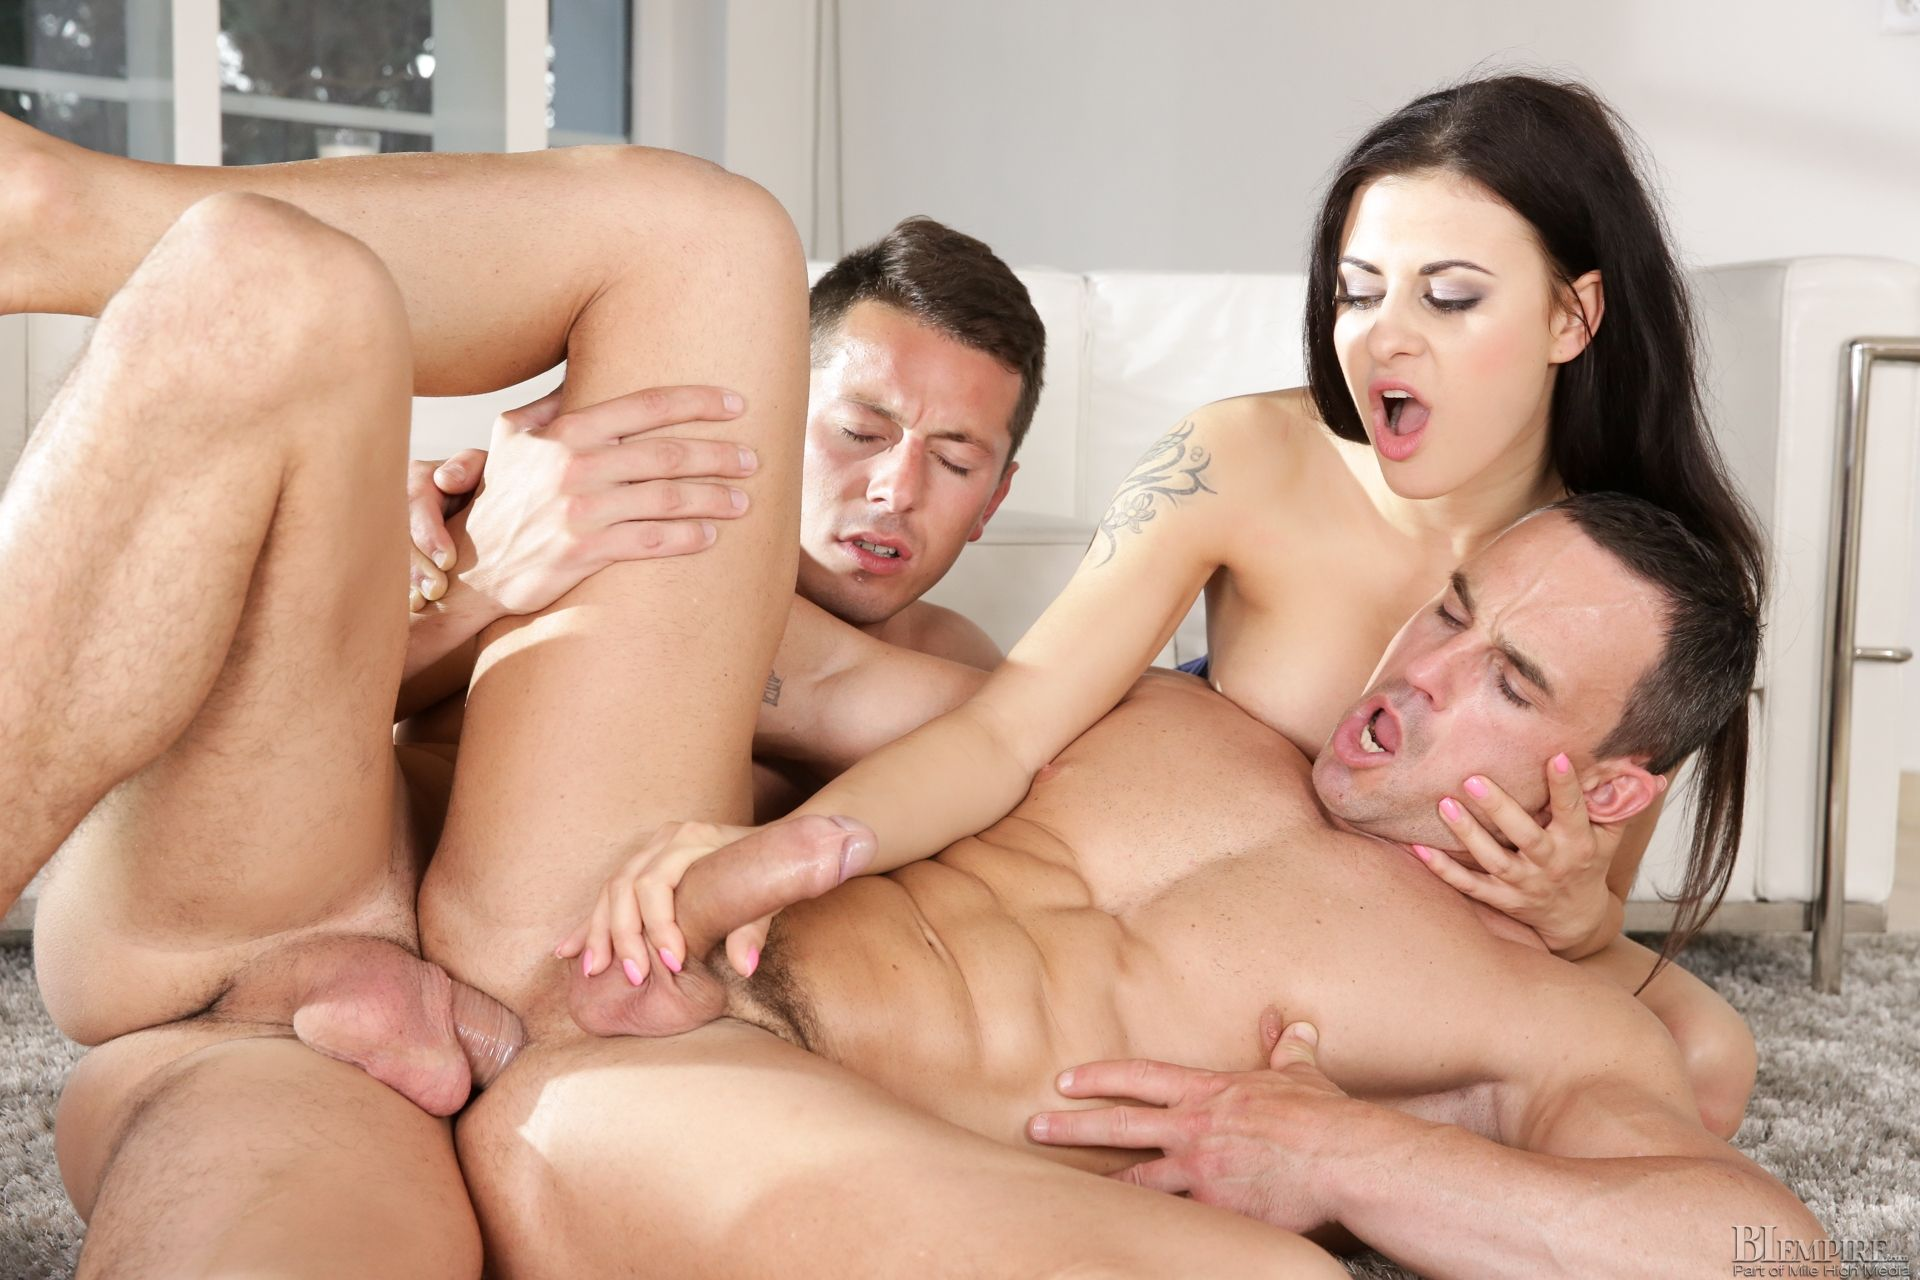 Free Bisexual Sex Clips Sex Game Free Fuck Photos